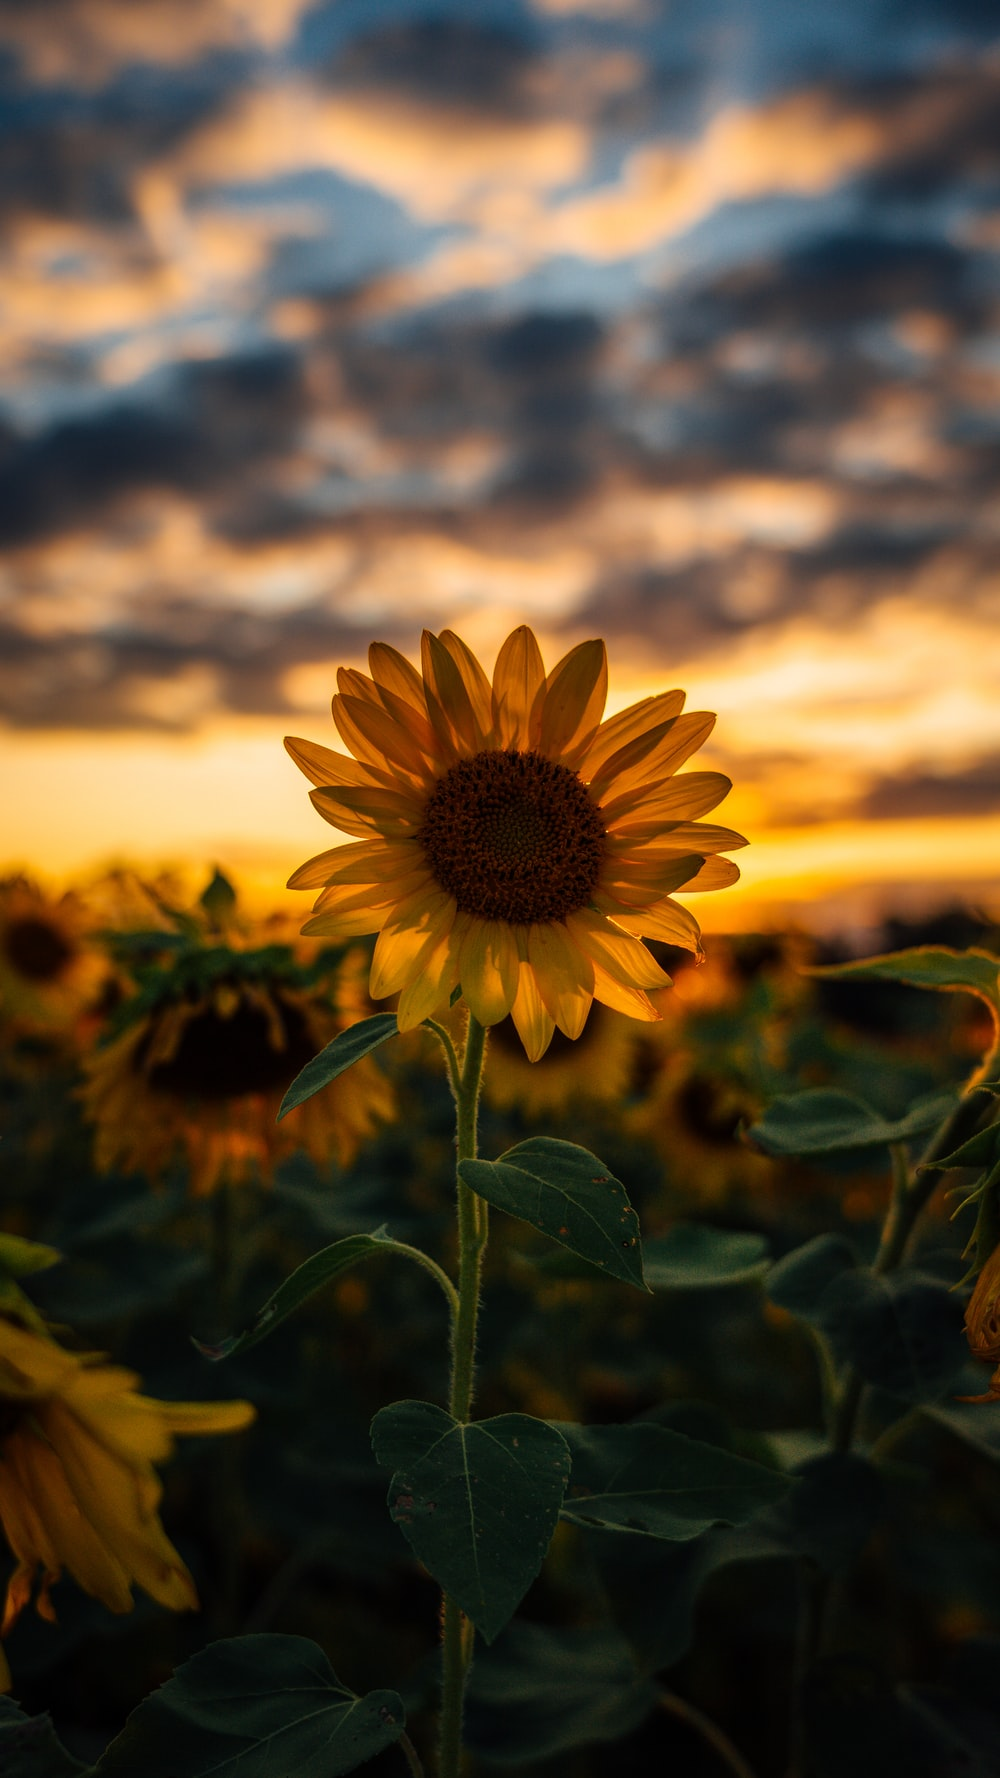 selective focus photography of yellow sunflower field during golden hour